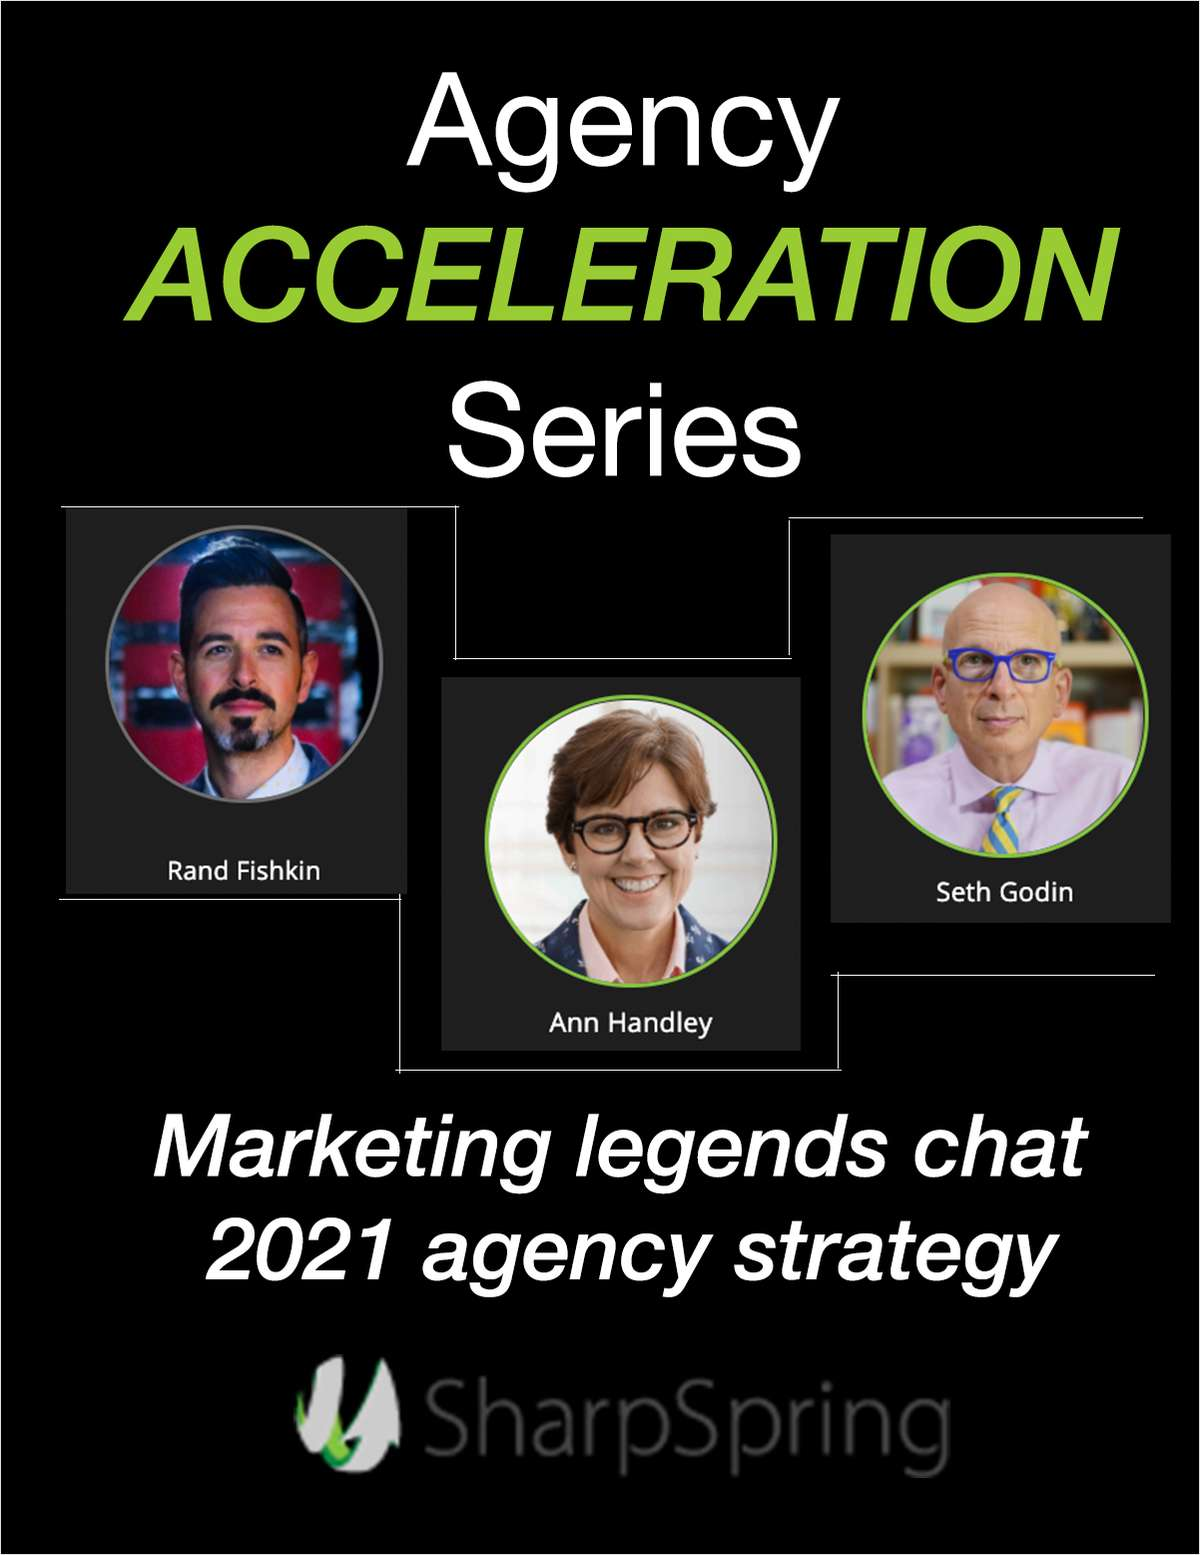 Agency Acceleration Series